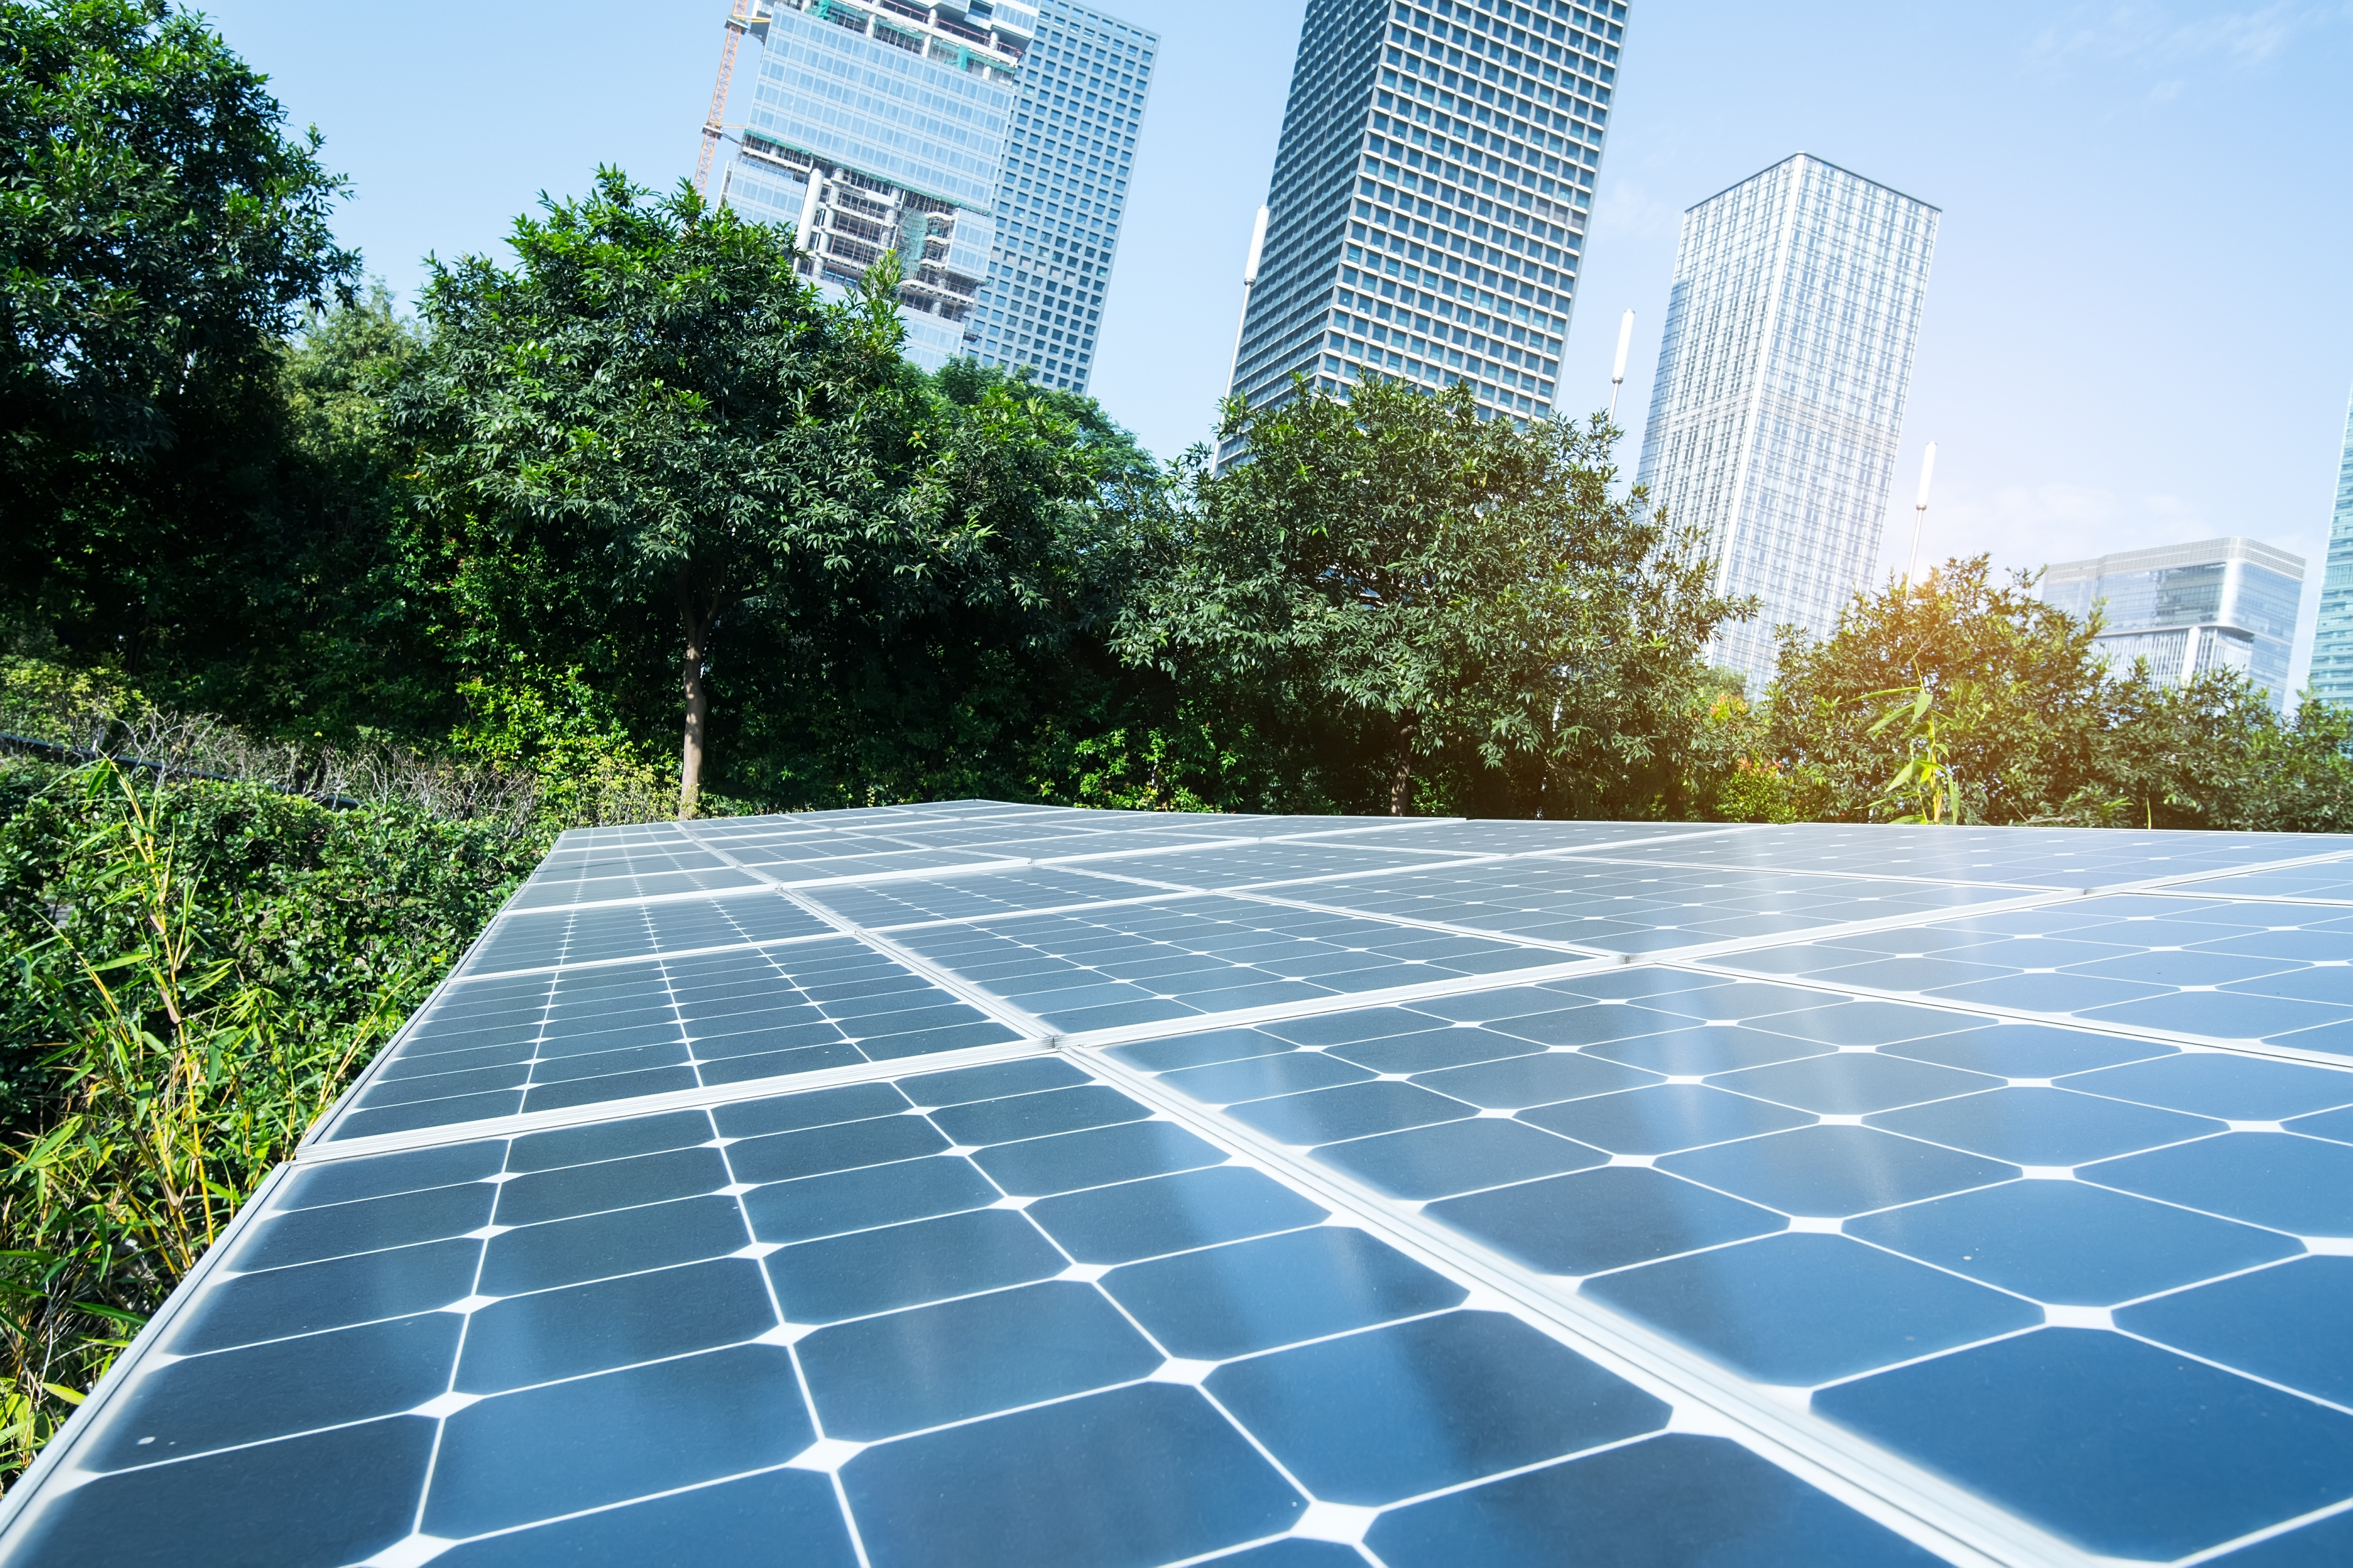 What's the pay back on solar investment for your business?